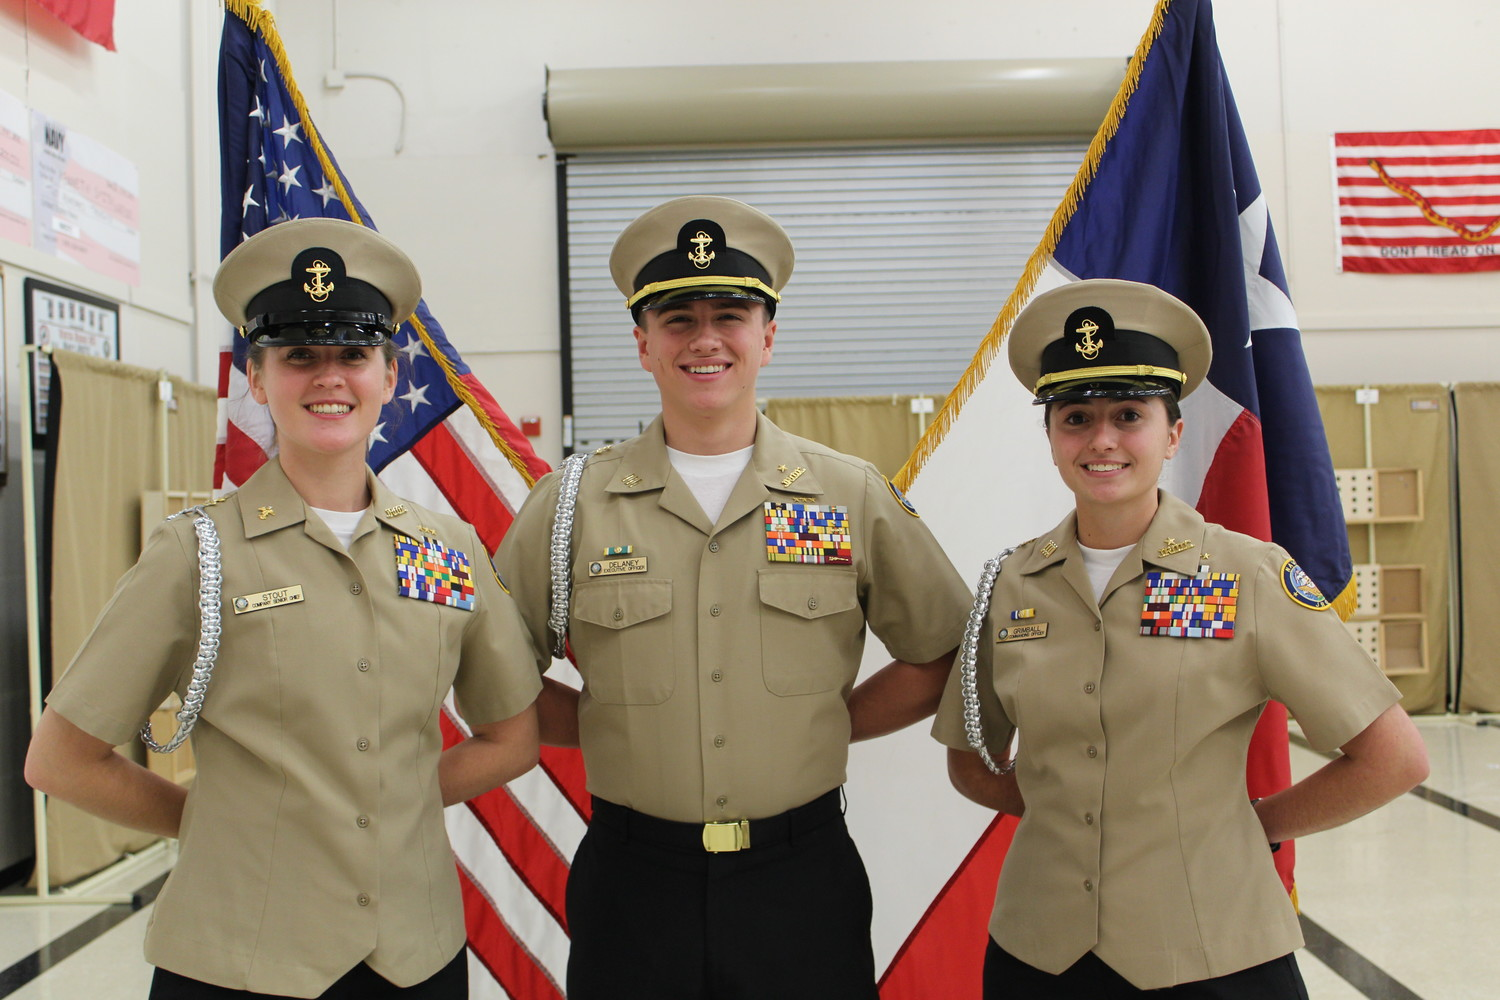 Seventeen-year-old Vista Ridge High School seniors Cailey Grimball, (right) Commanding Officer of the Lone Star Company, Senior Lieutenant Andrew Delaney (middle) and Cadet Senior Chief Petty Officer Sarah Stout.